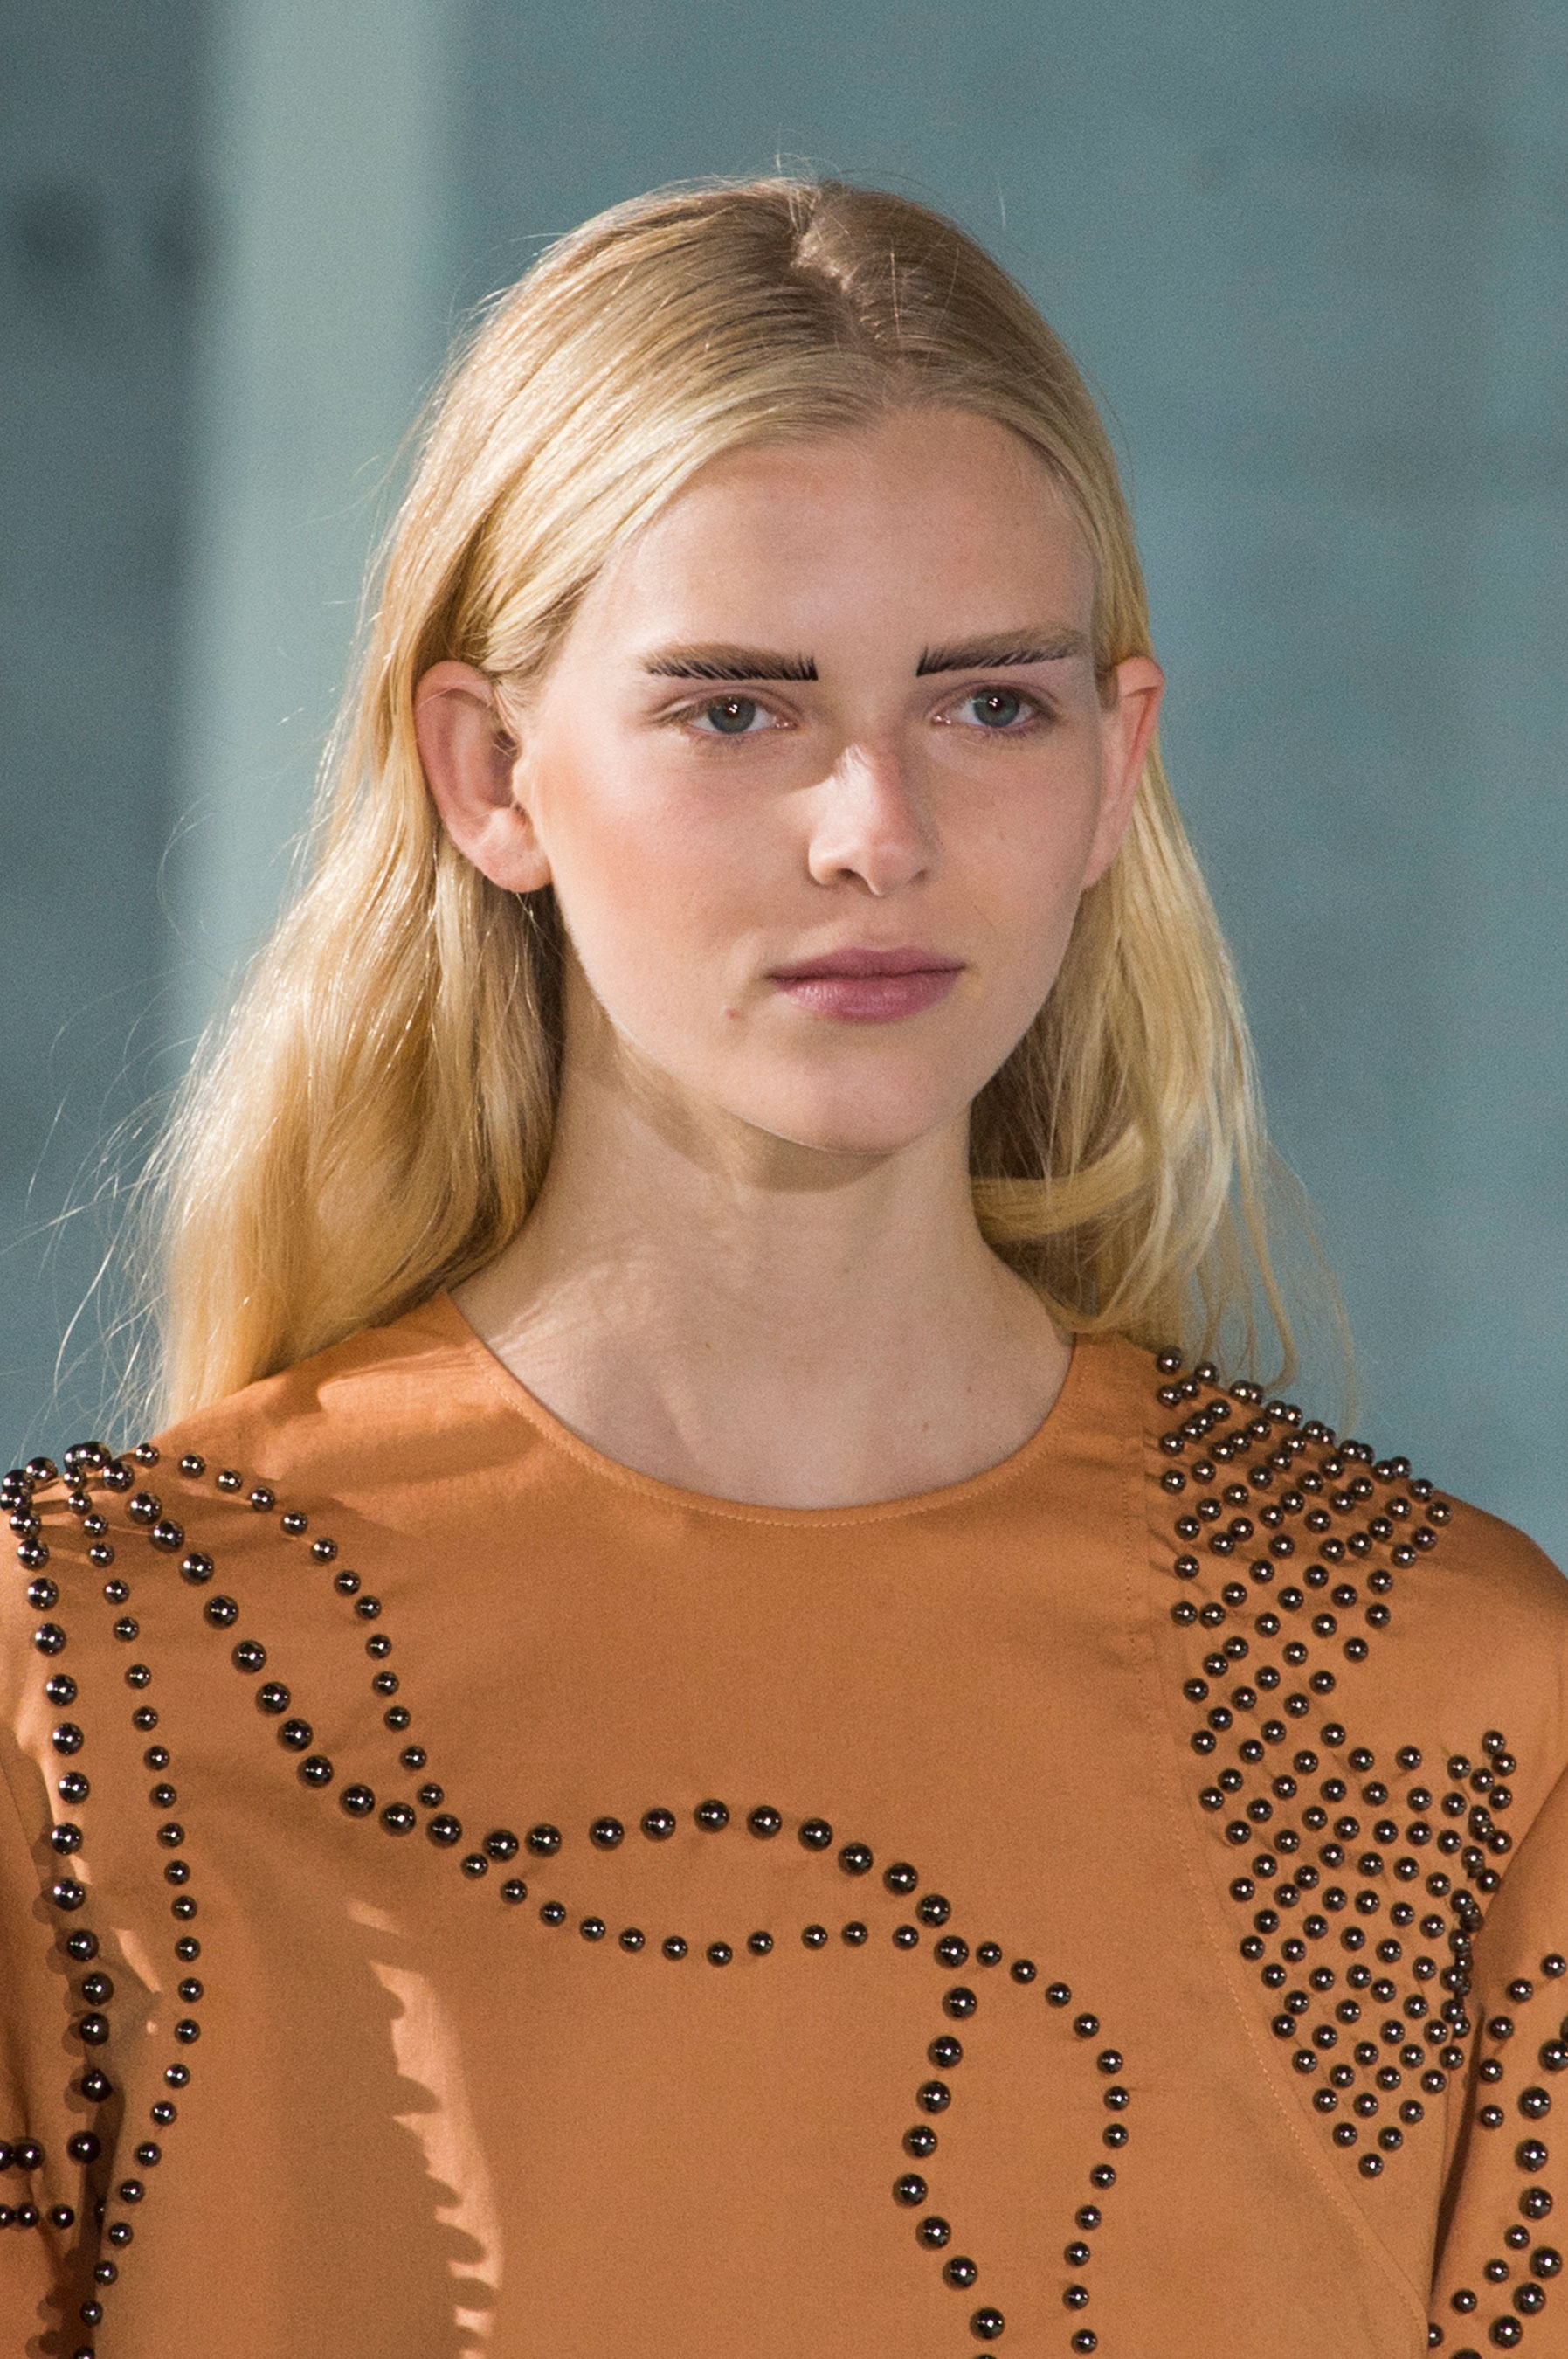 Cedric-charlier-spring-2016-runway-beauty-fashion-show-the-impression-07